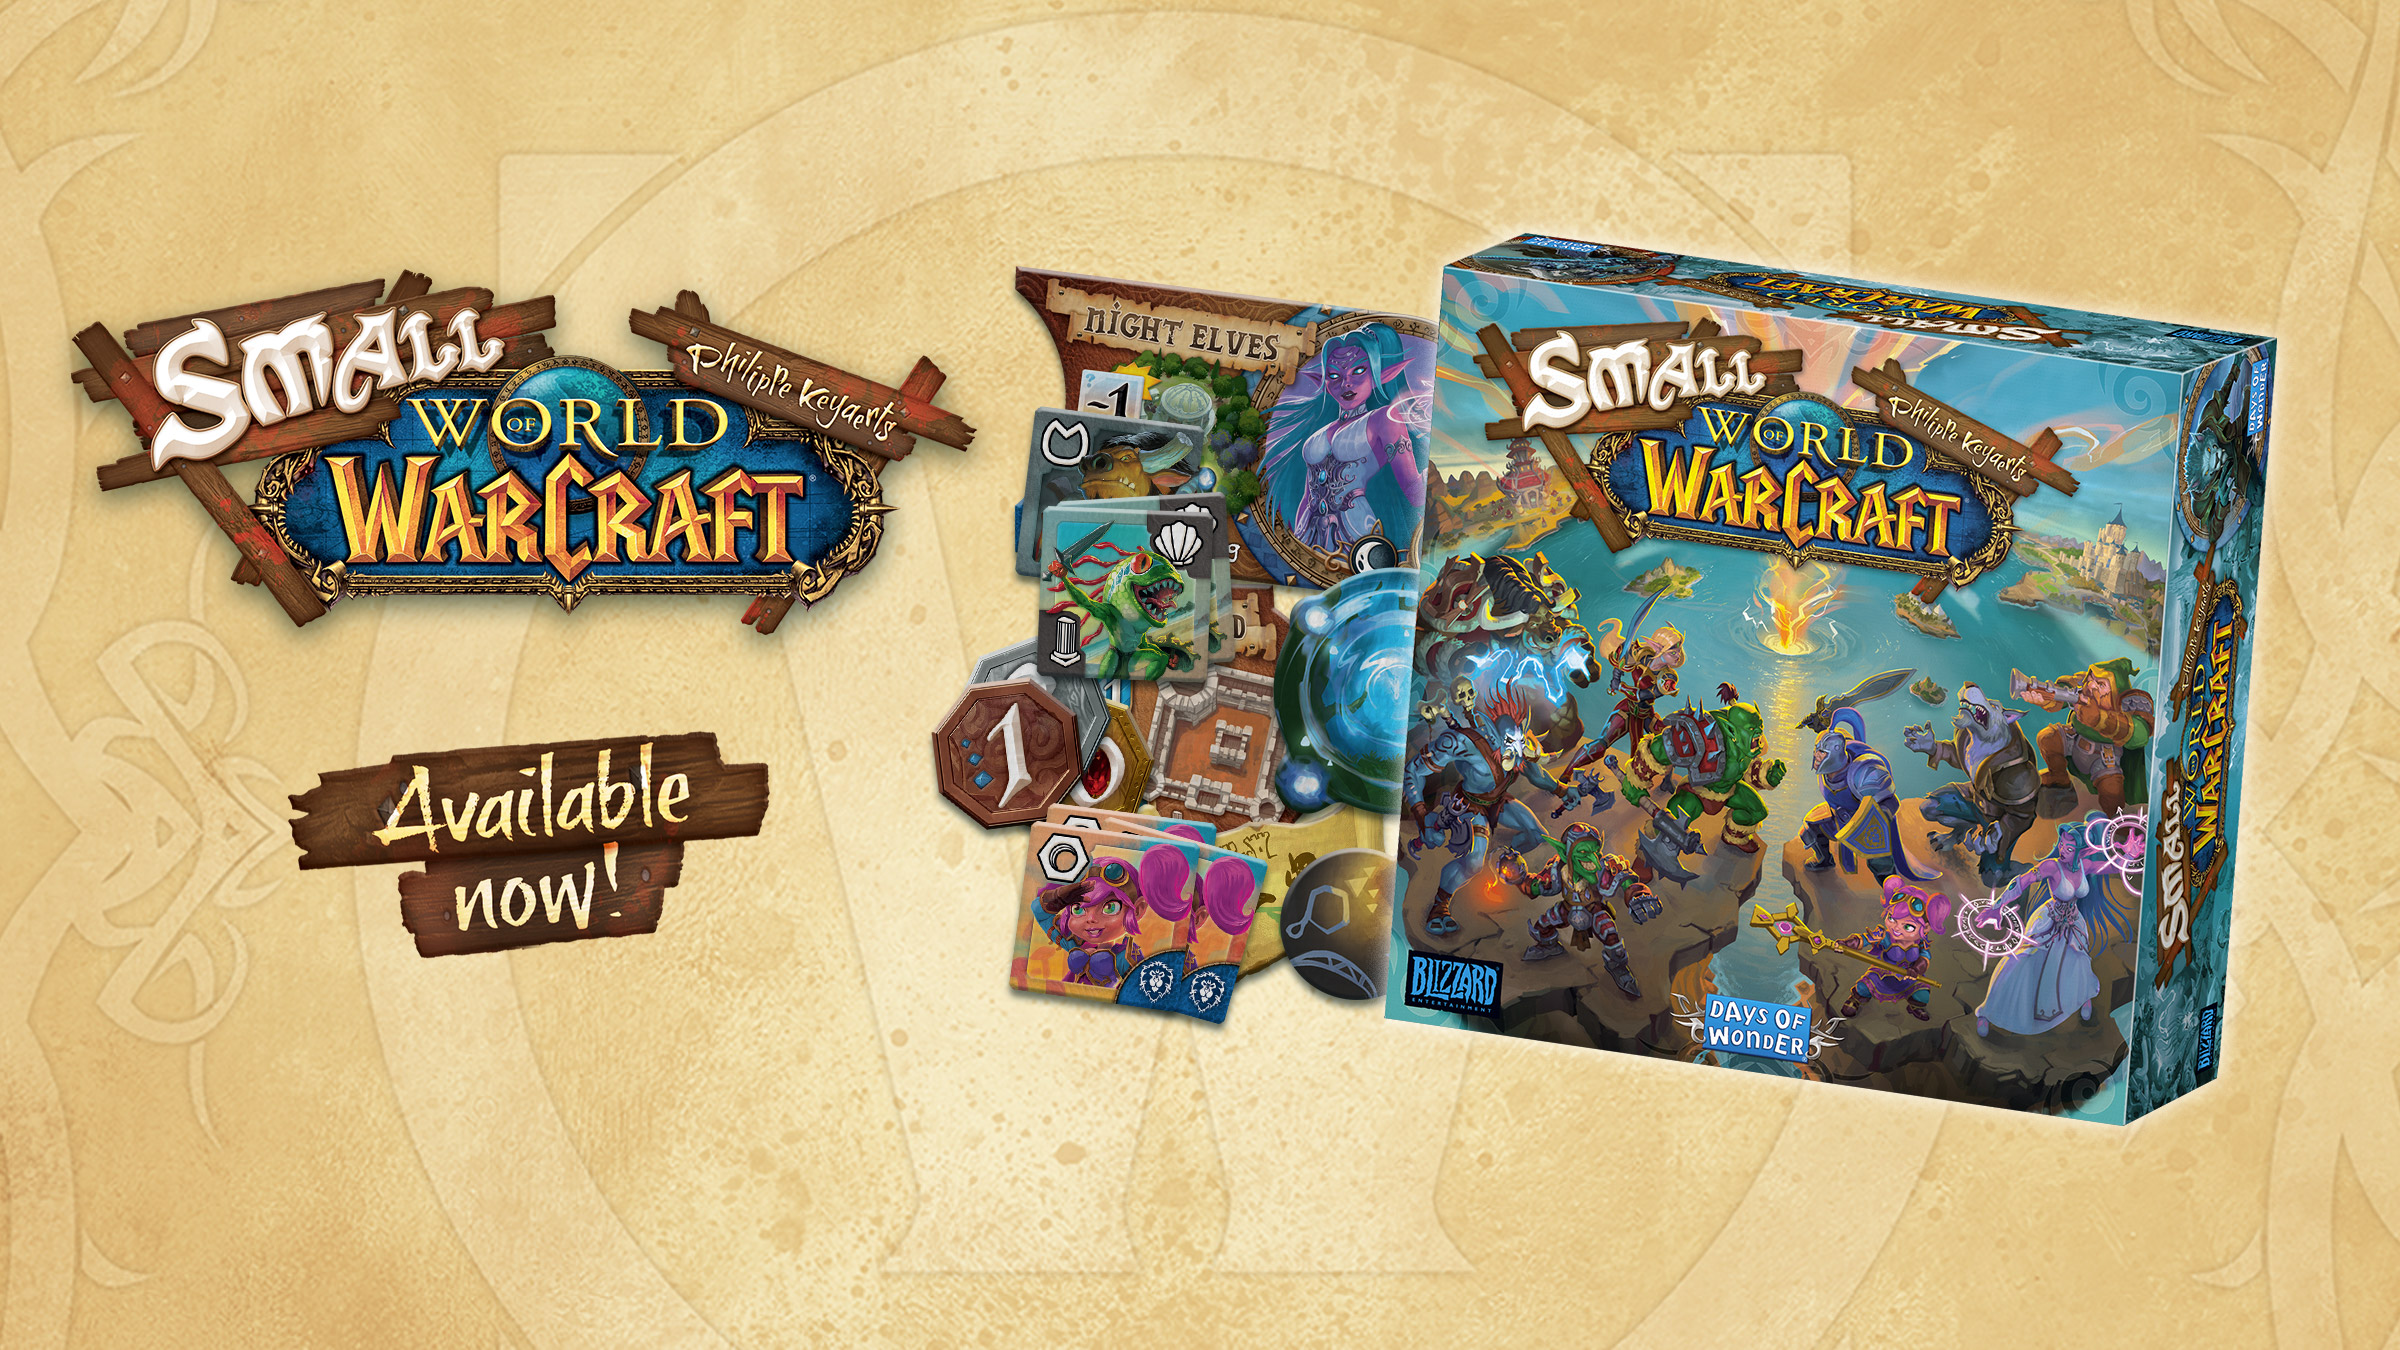 Small World of Warcraft is now available